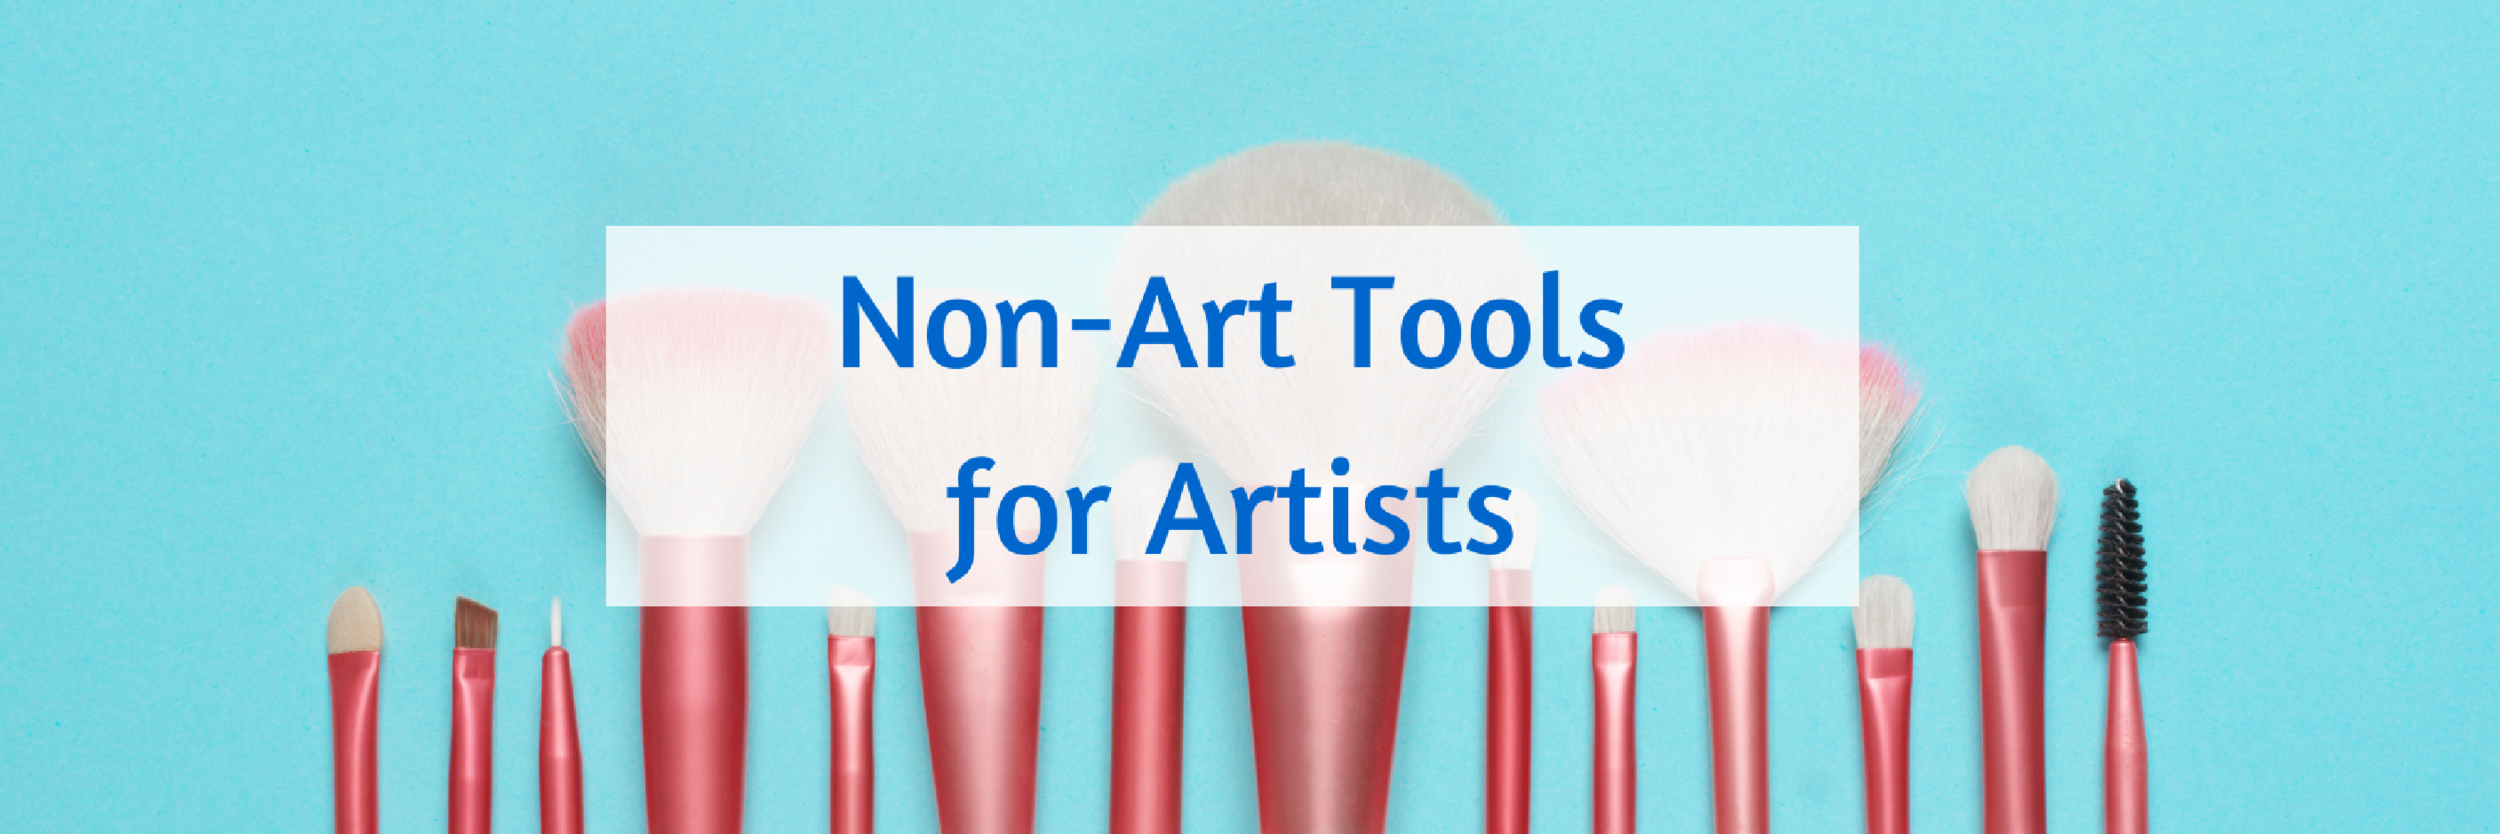 122 Non- Art Tools for Artists.png